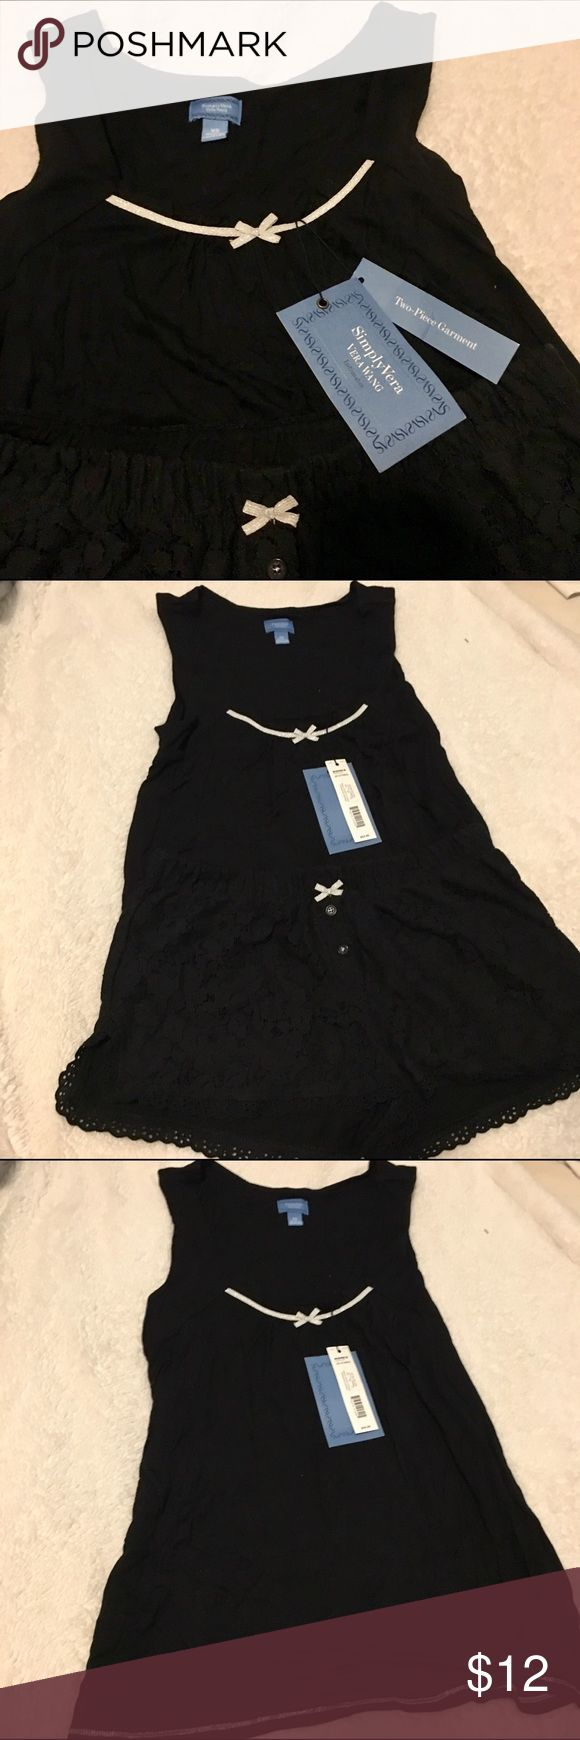 *NWT* Simply Vera PJ Set Simply Vera Vera Wang PJ Set: black cotton tank and matching black lace shorts, both with silver bow detail. Simply Vera Vera Wang Intimates & Sleepwear Pajamas